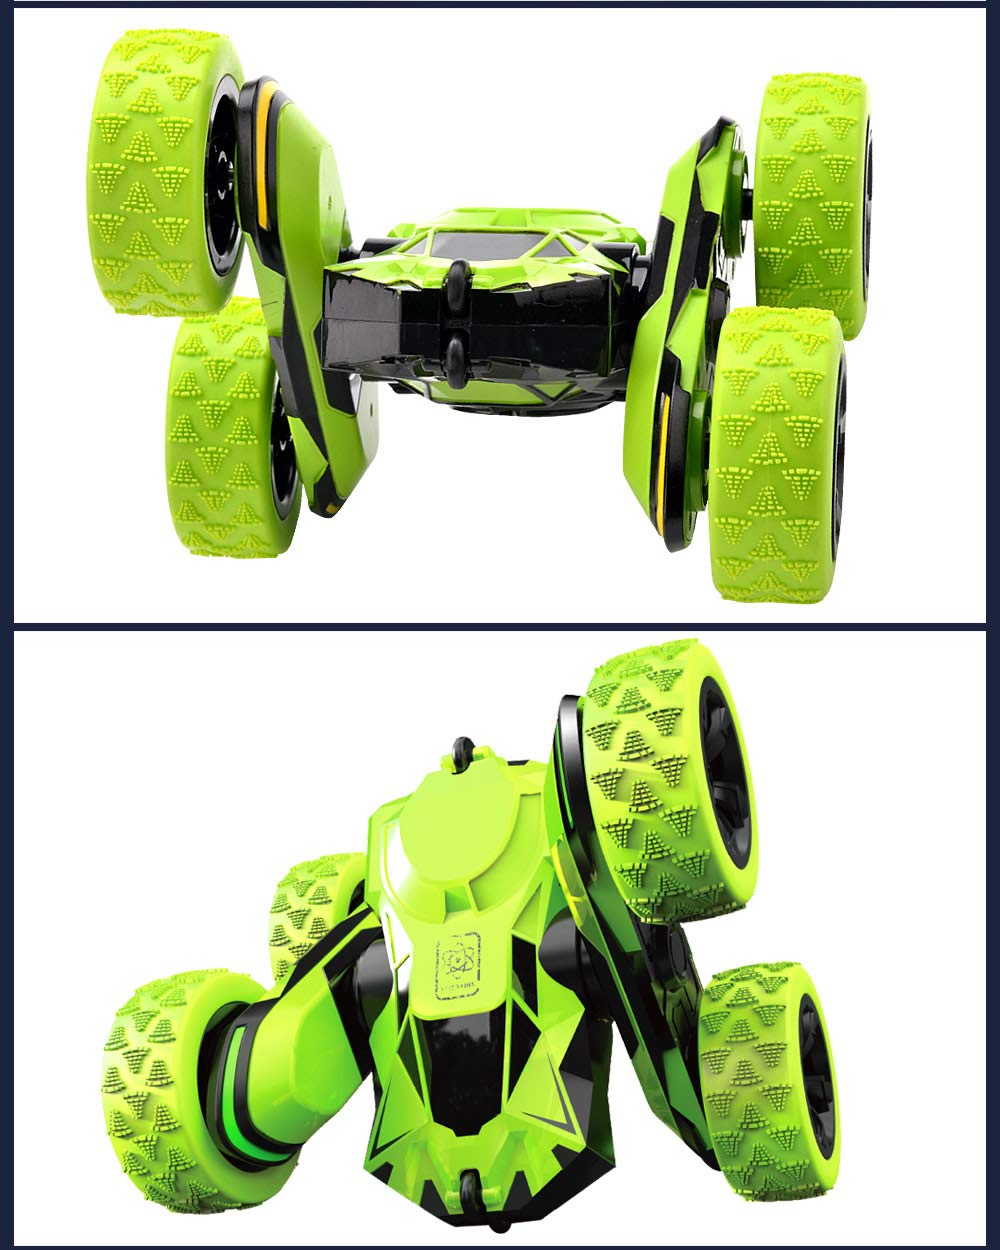 Threeking Rc Stunt Car Remote Control Off-Road Truck Double Sided Tumbling 360 Degree Rotation 3D Deformation Dance Car 1:28 2.4Ghz Rechargeable Stunt Car Great Gift for Kids - Green by Threeking (Image #5)